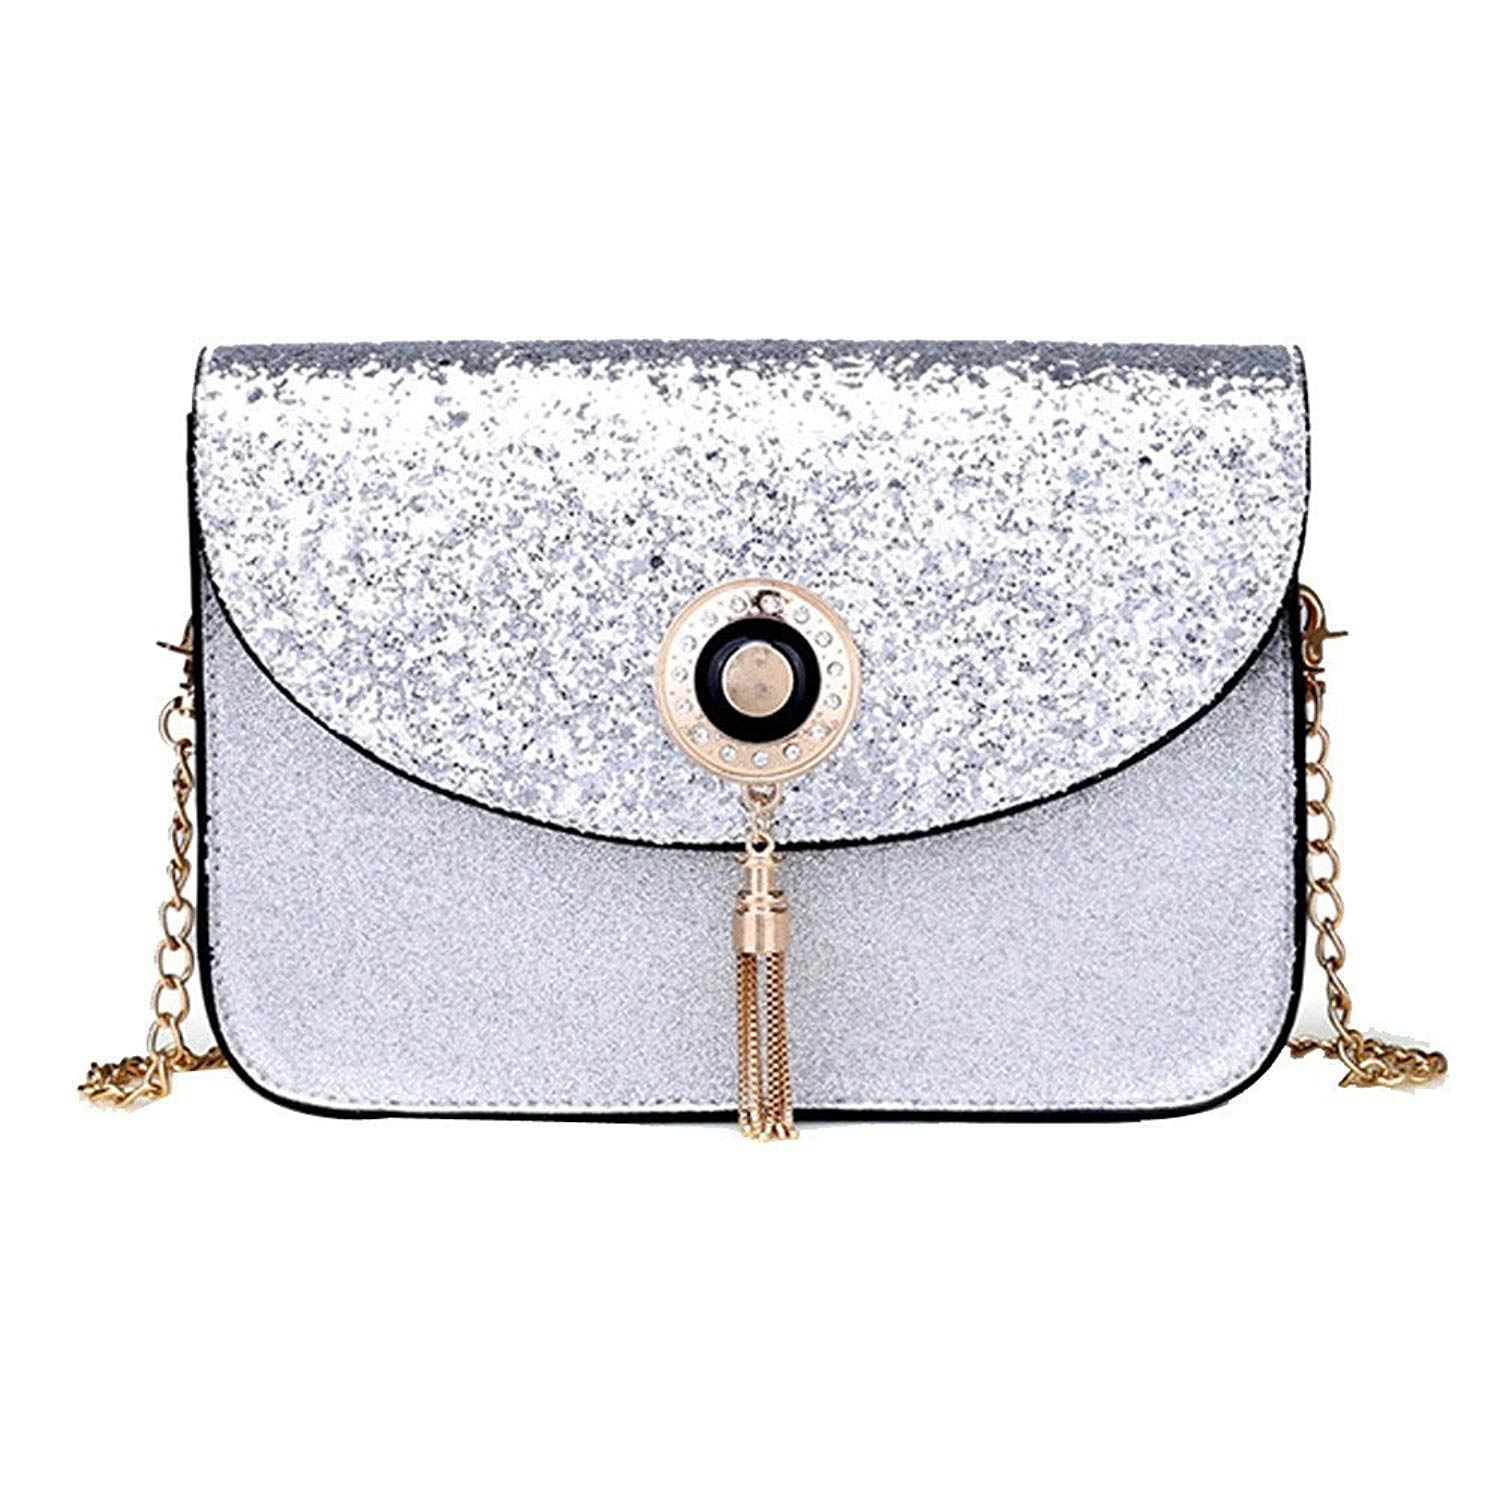 Liraly Gift Bags,Clearance Sale! 2018 Women Sequins Handbag Shoulder Bag Small Tote Ladies Purse Crossbody Bag